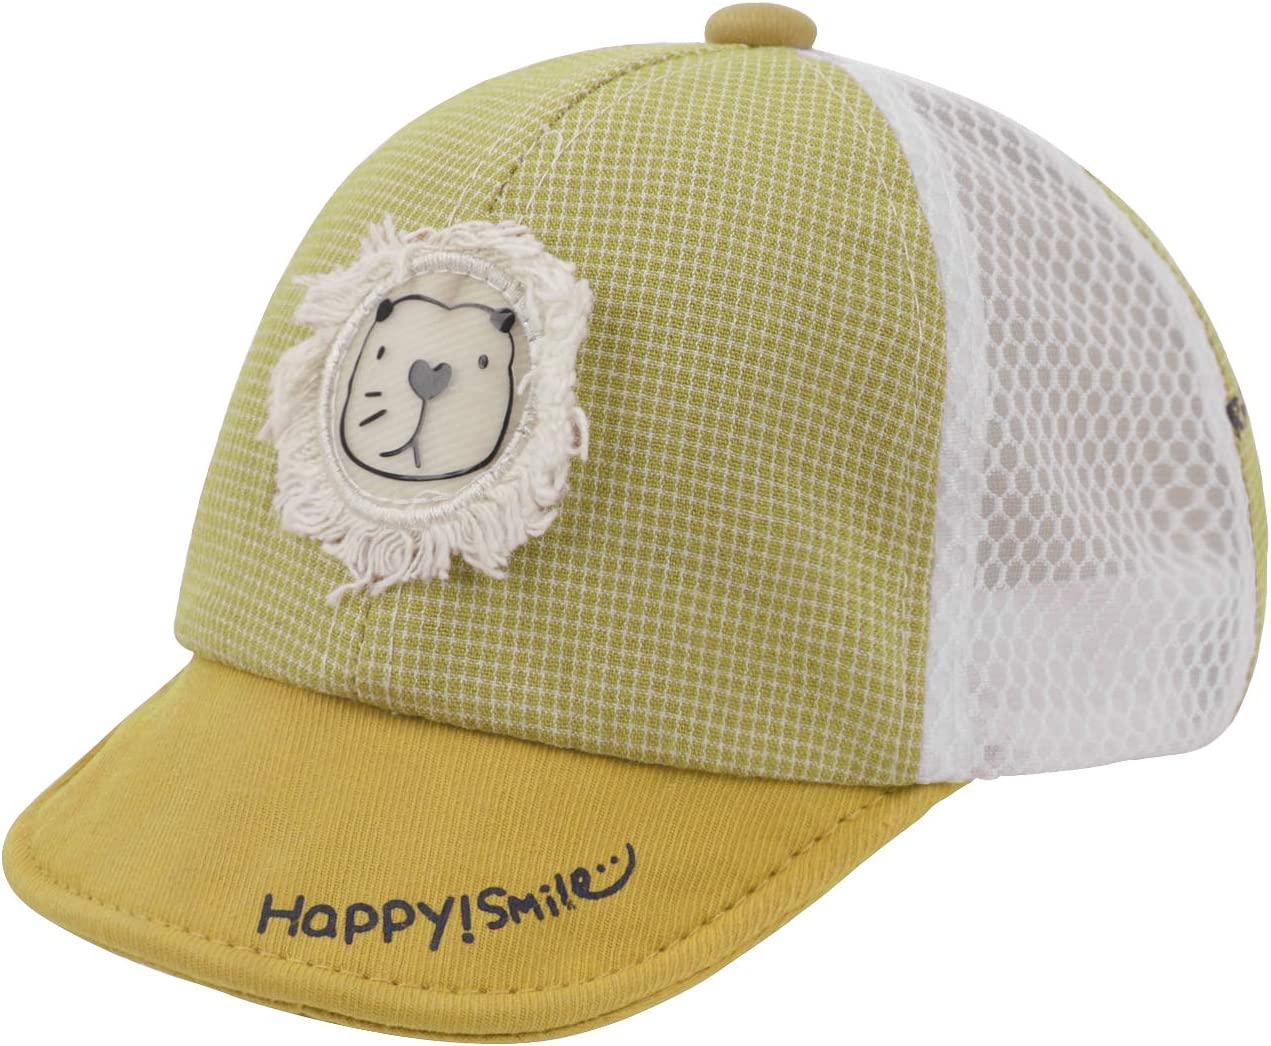 TINAYAUE Baby Toddlers Baseball Cap for 3-18 Month Boys Girls Infant Cotton Caps Quickly Dry Sun Protection Hat Cute Cartoon Lion Baseball Cap Summer Outdoor Beach Hat for Kids